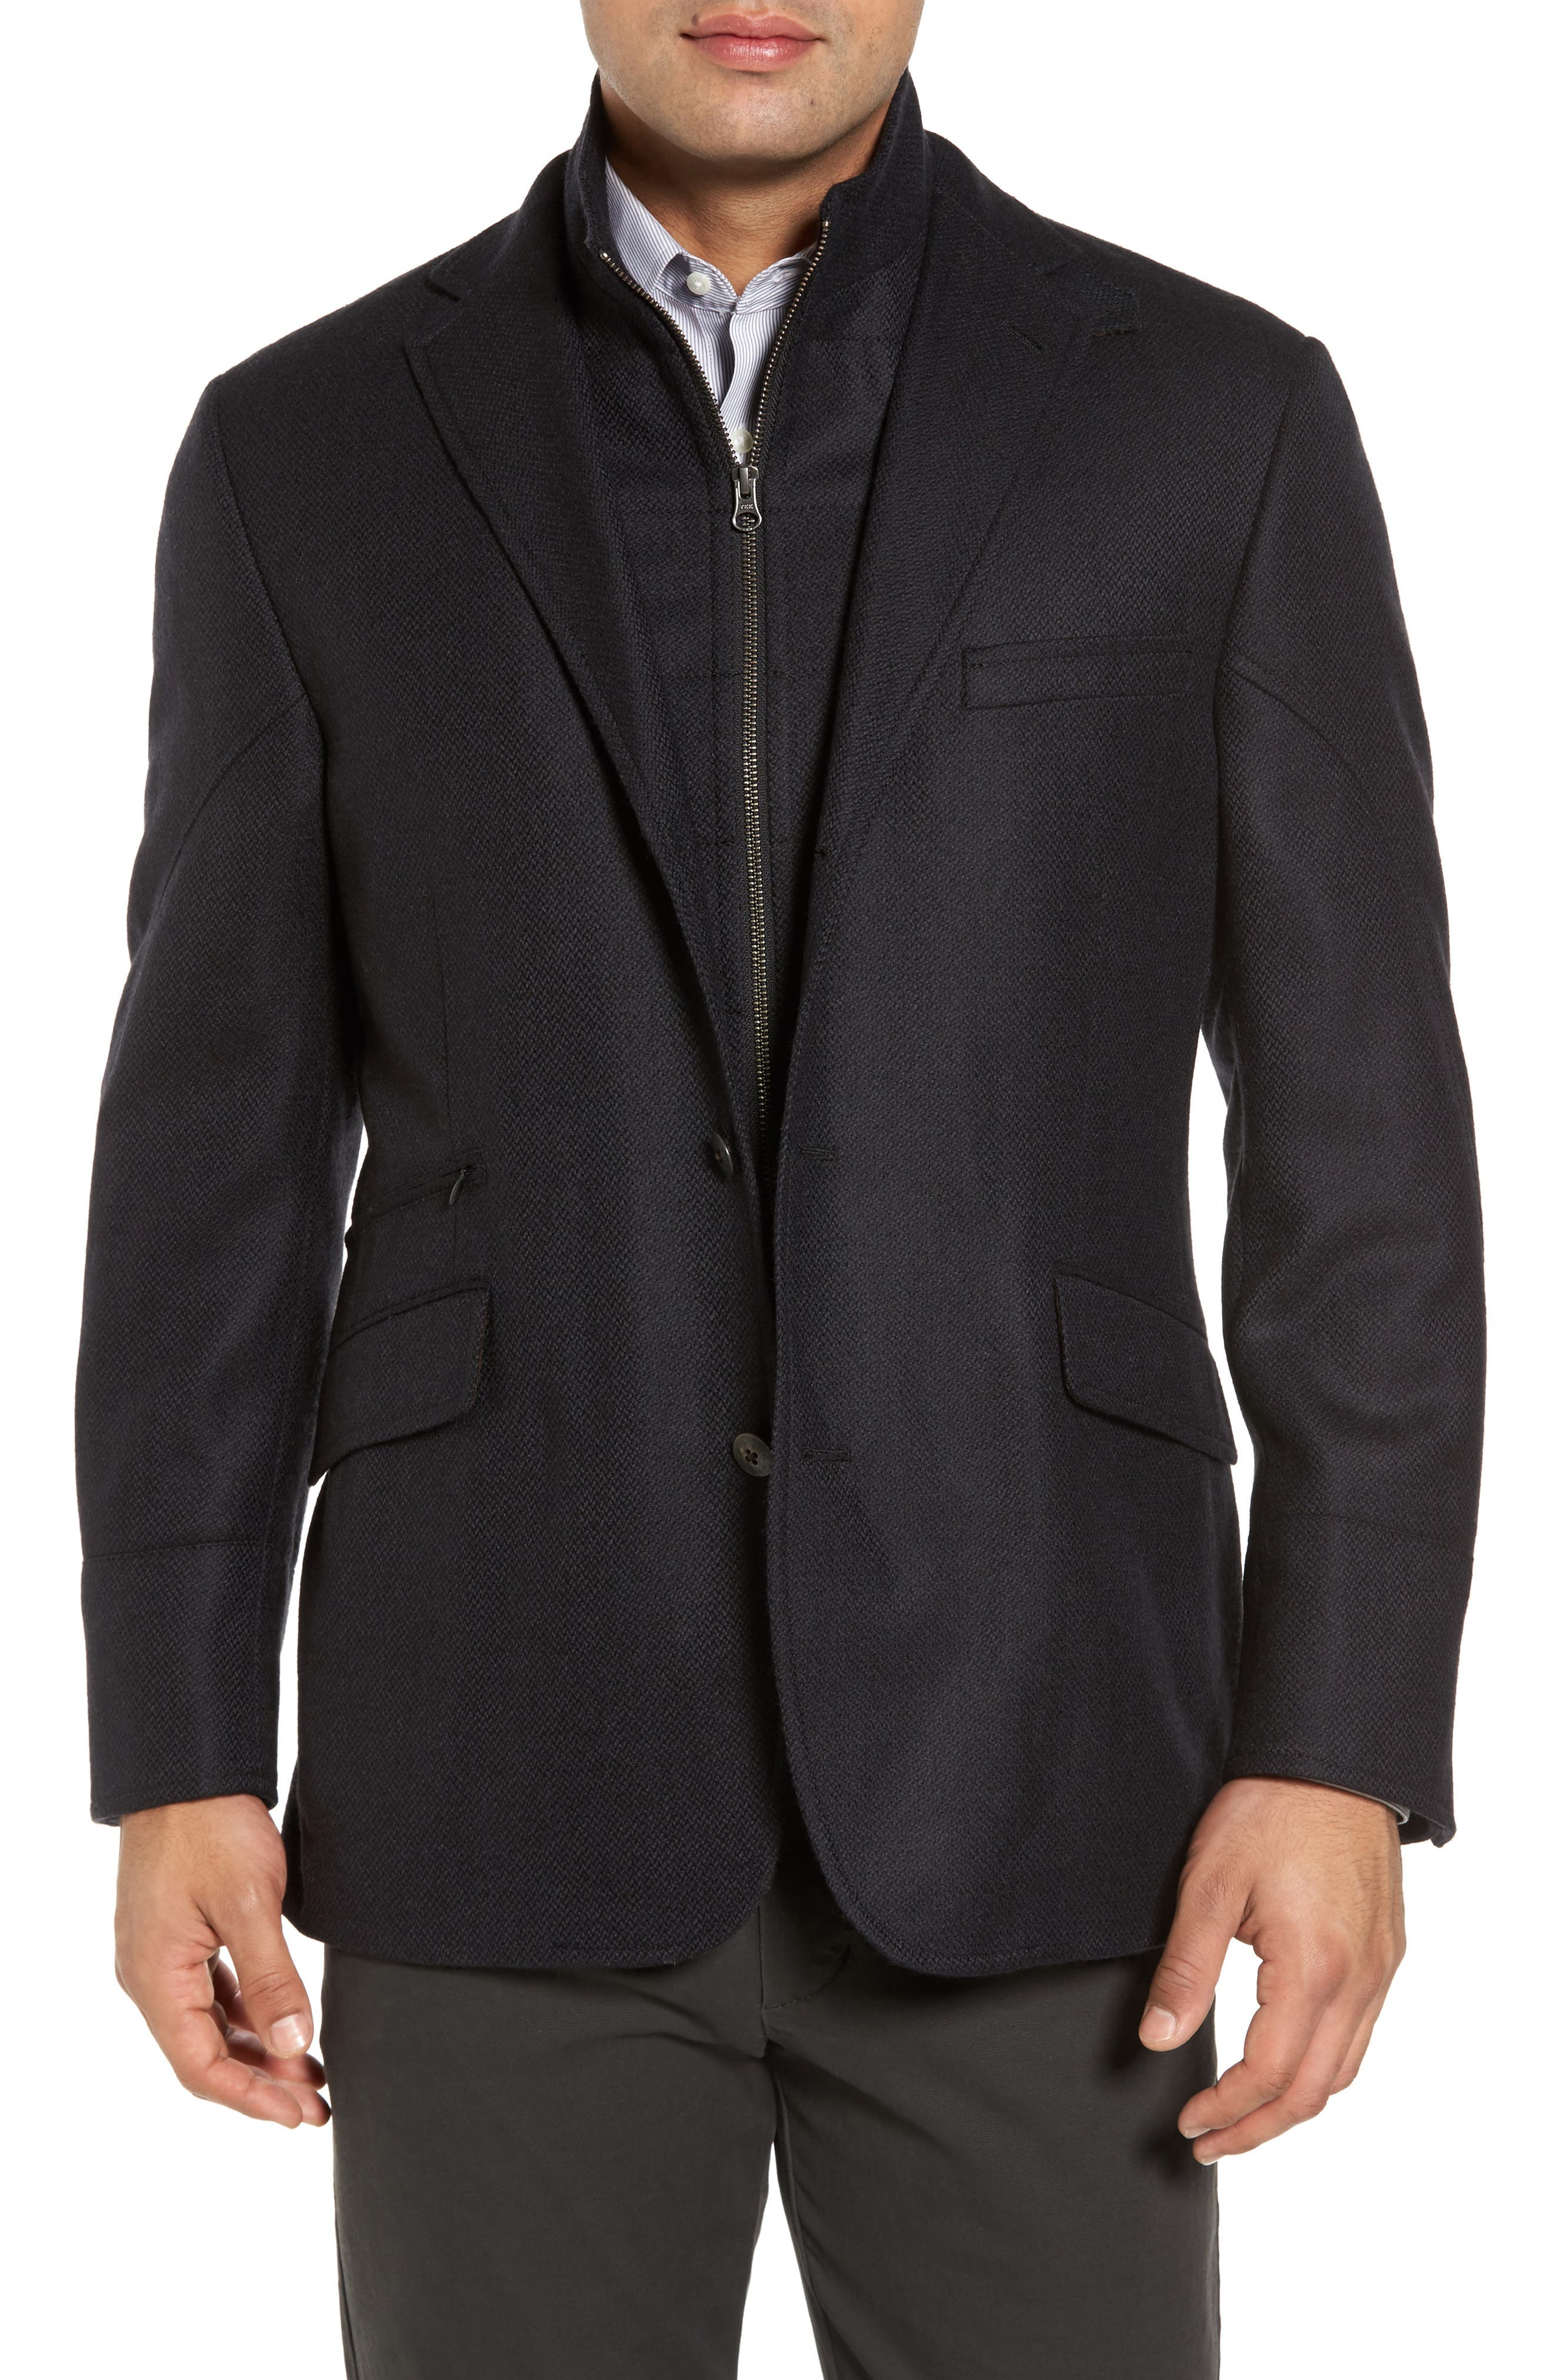 Ritchie Aim Hybrid Classic Fit Wool & Cashmere Sport Coat,                             Main thumbnail 1, color,                             001